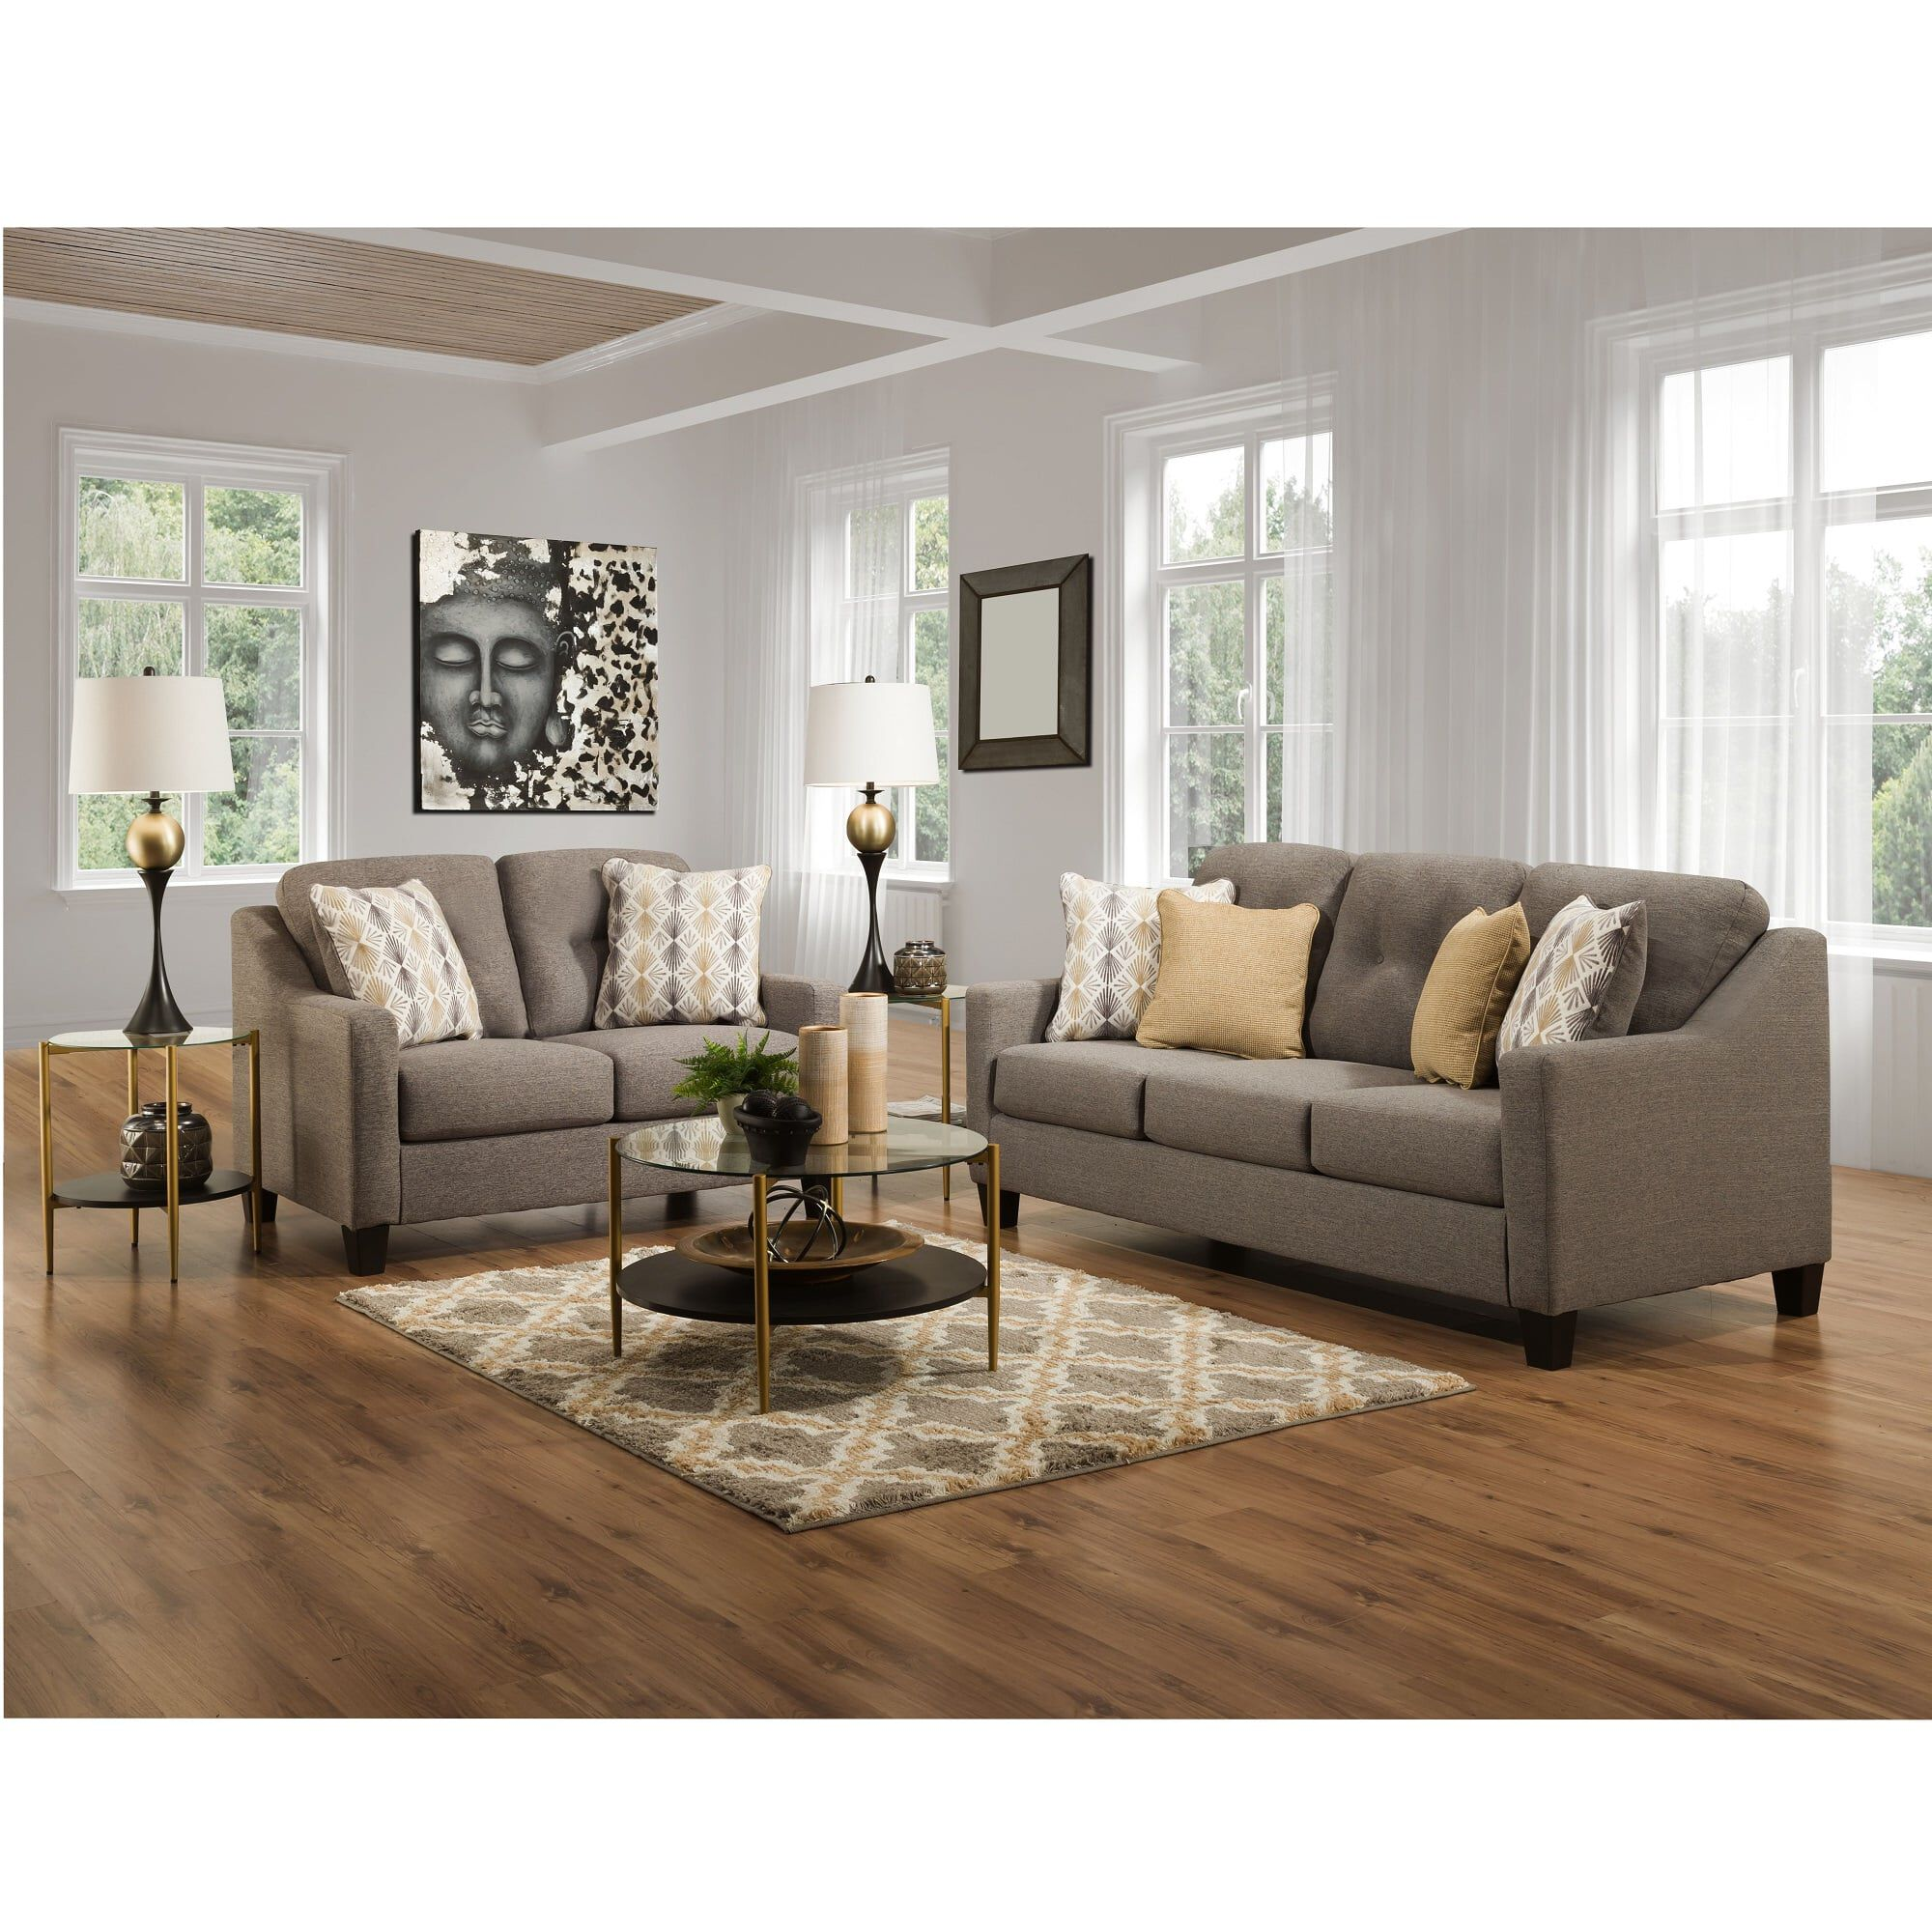 2 Piece Daylon Living Room Collection